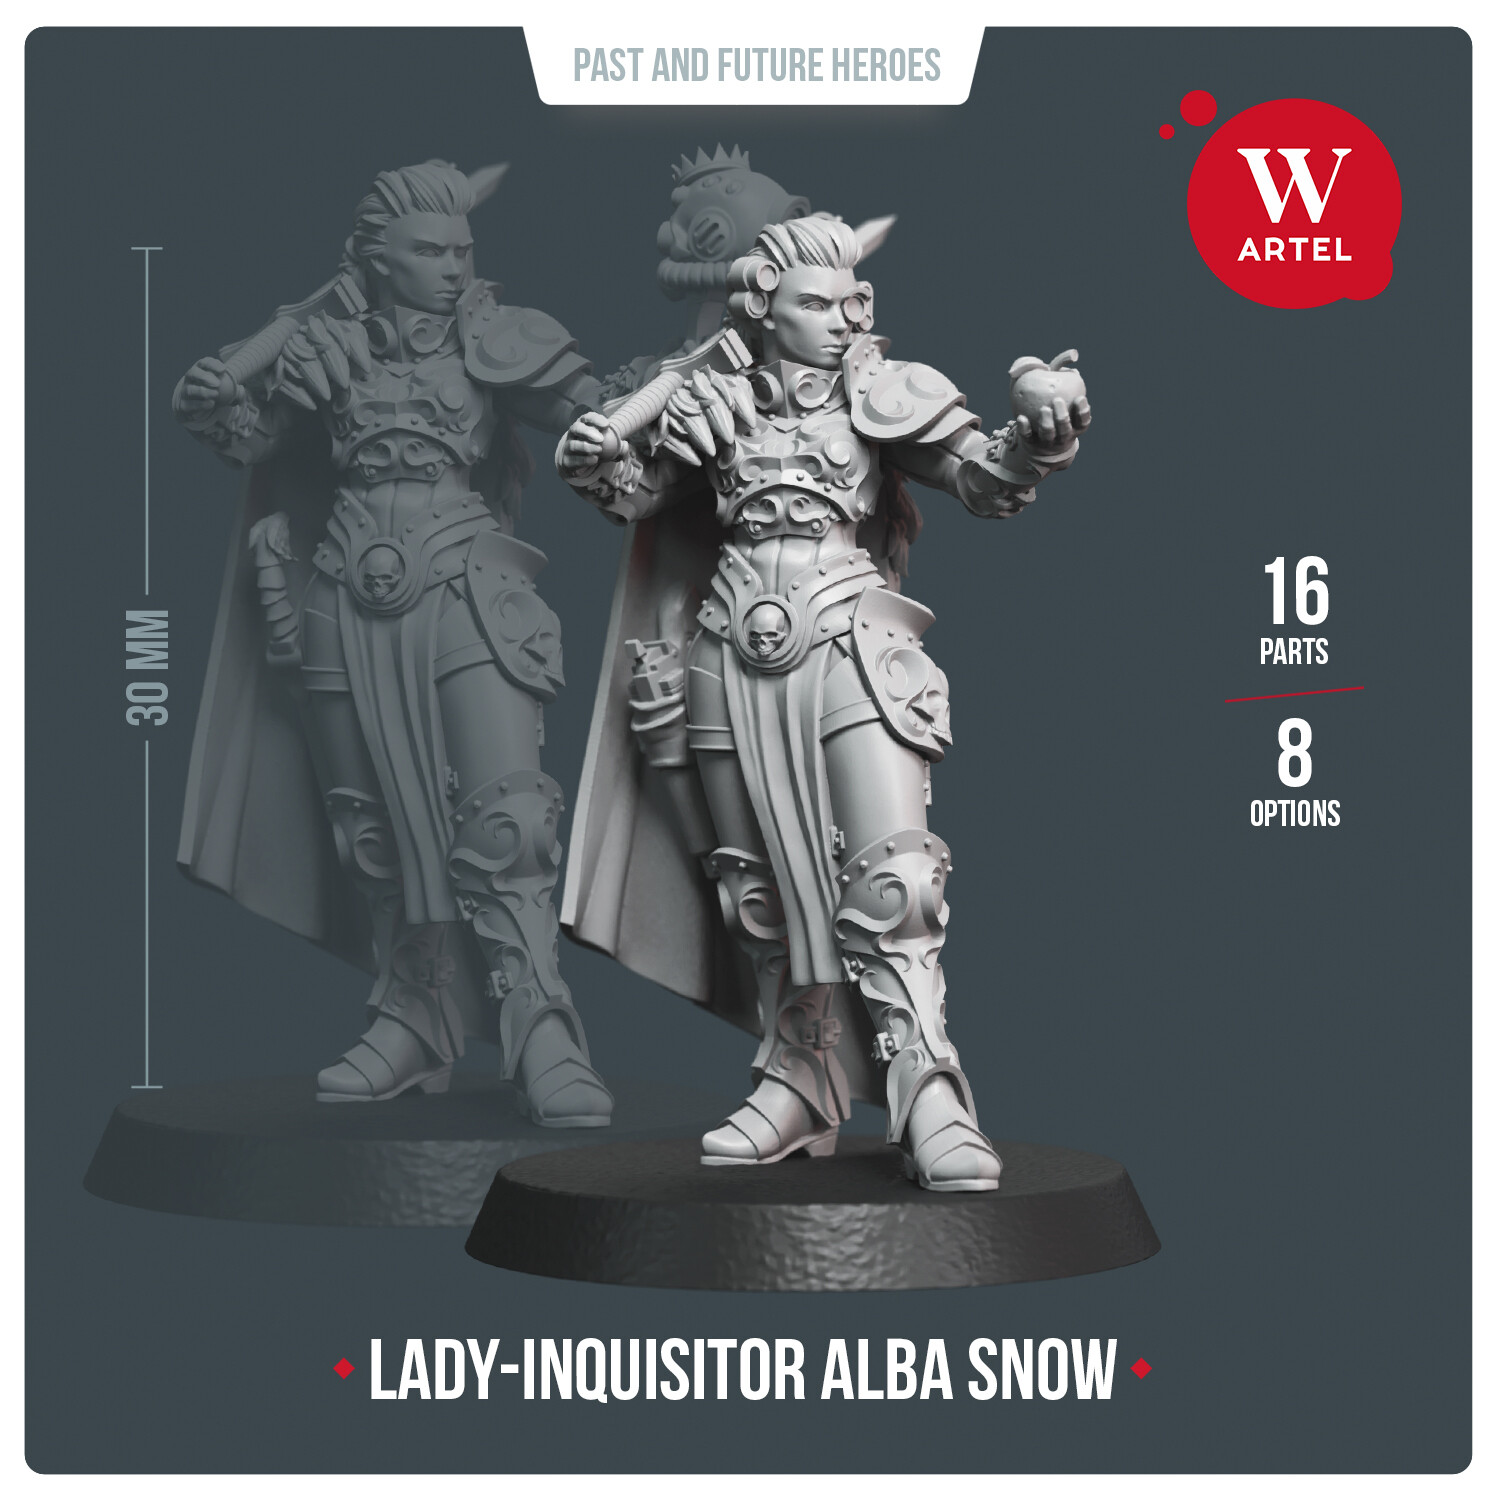 Lady-Inquisitor Alba Snow